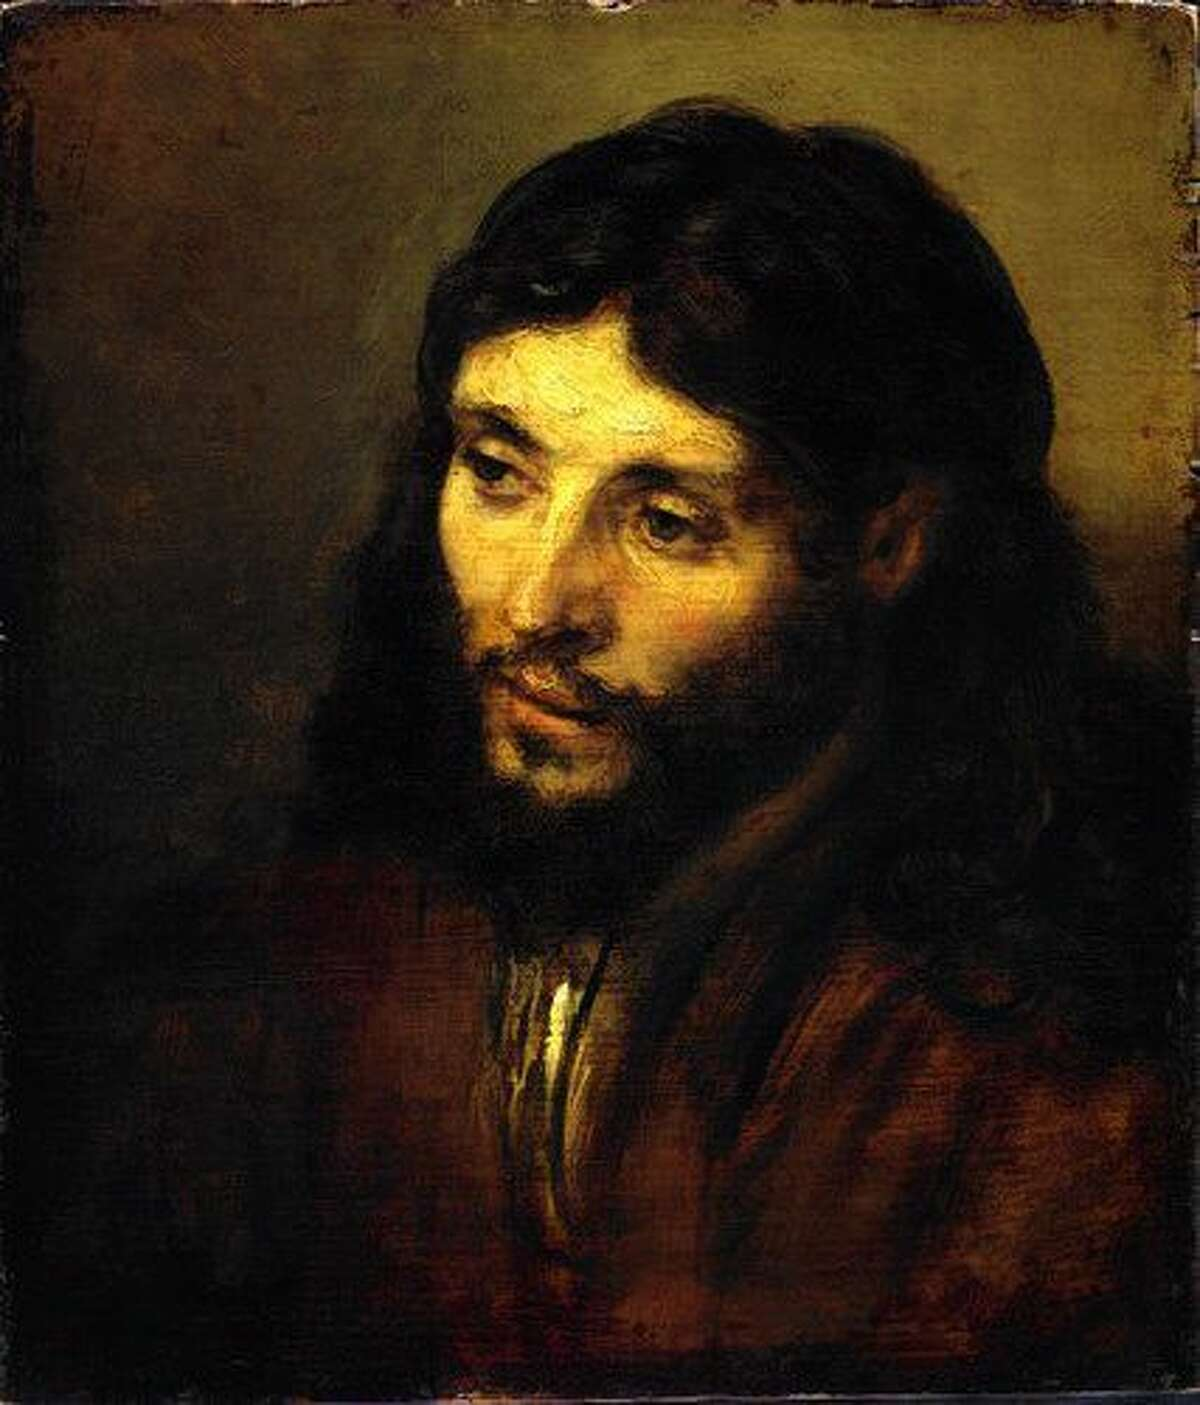 Rembrandt painted this image of Jesus.